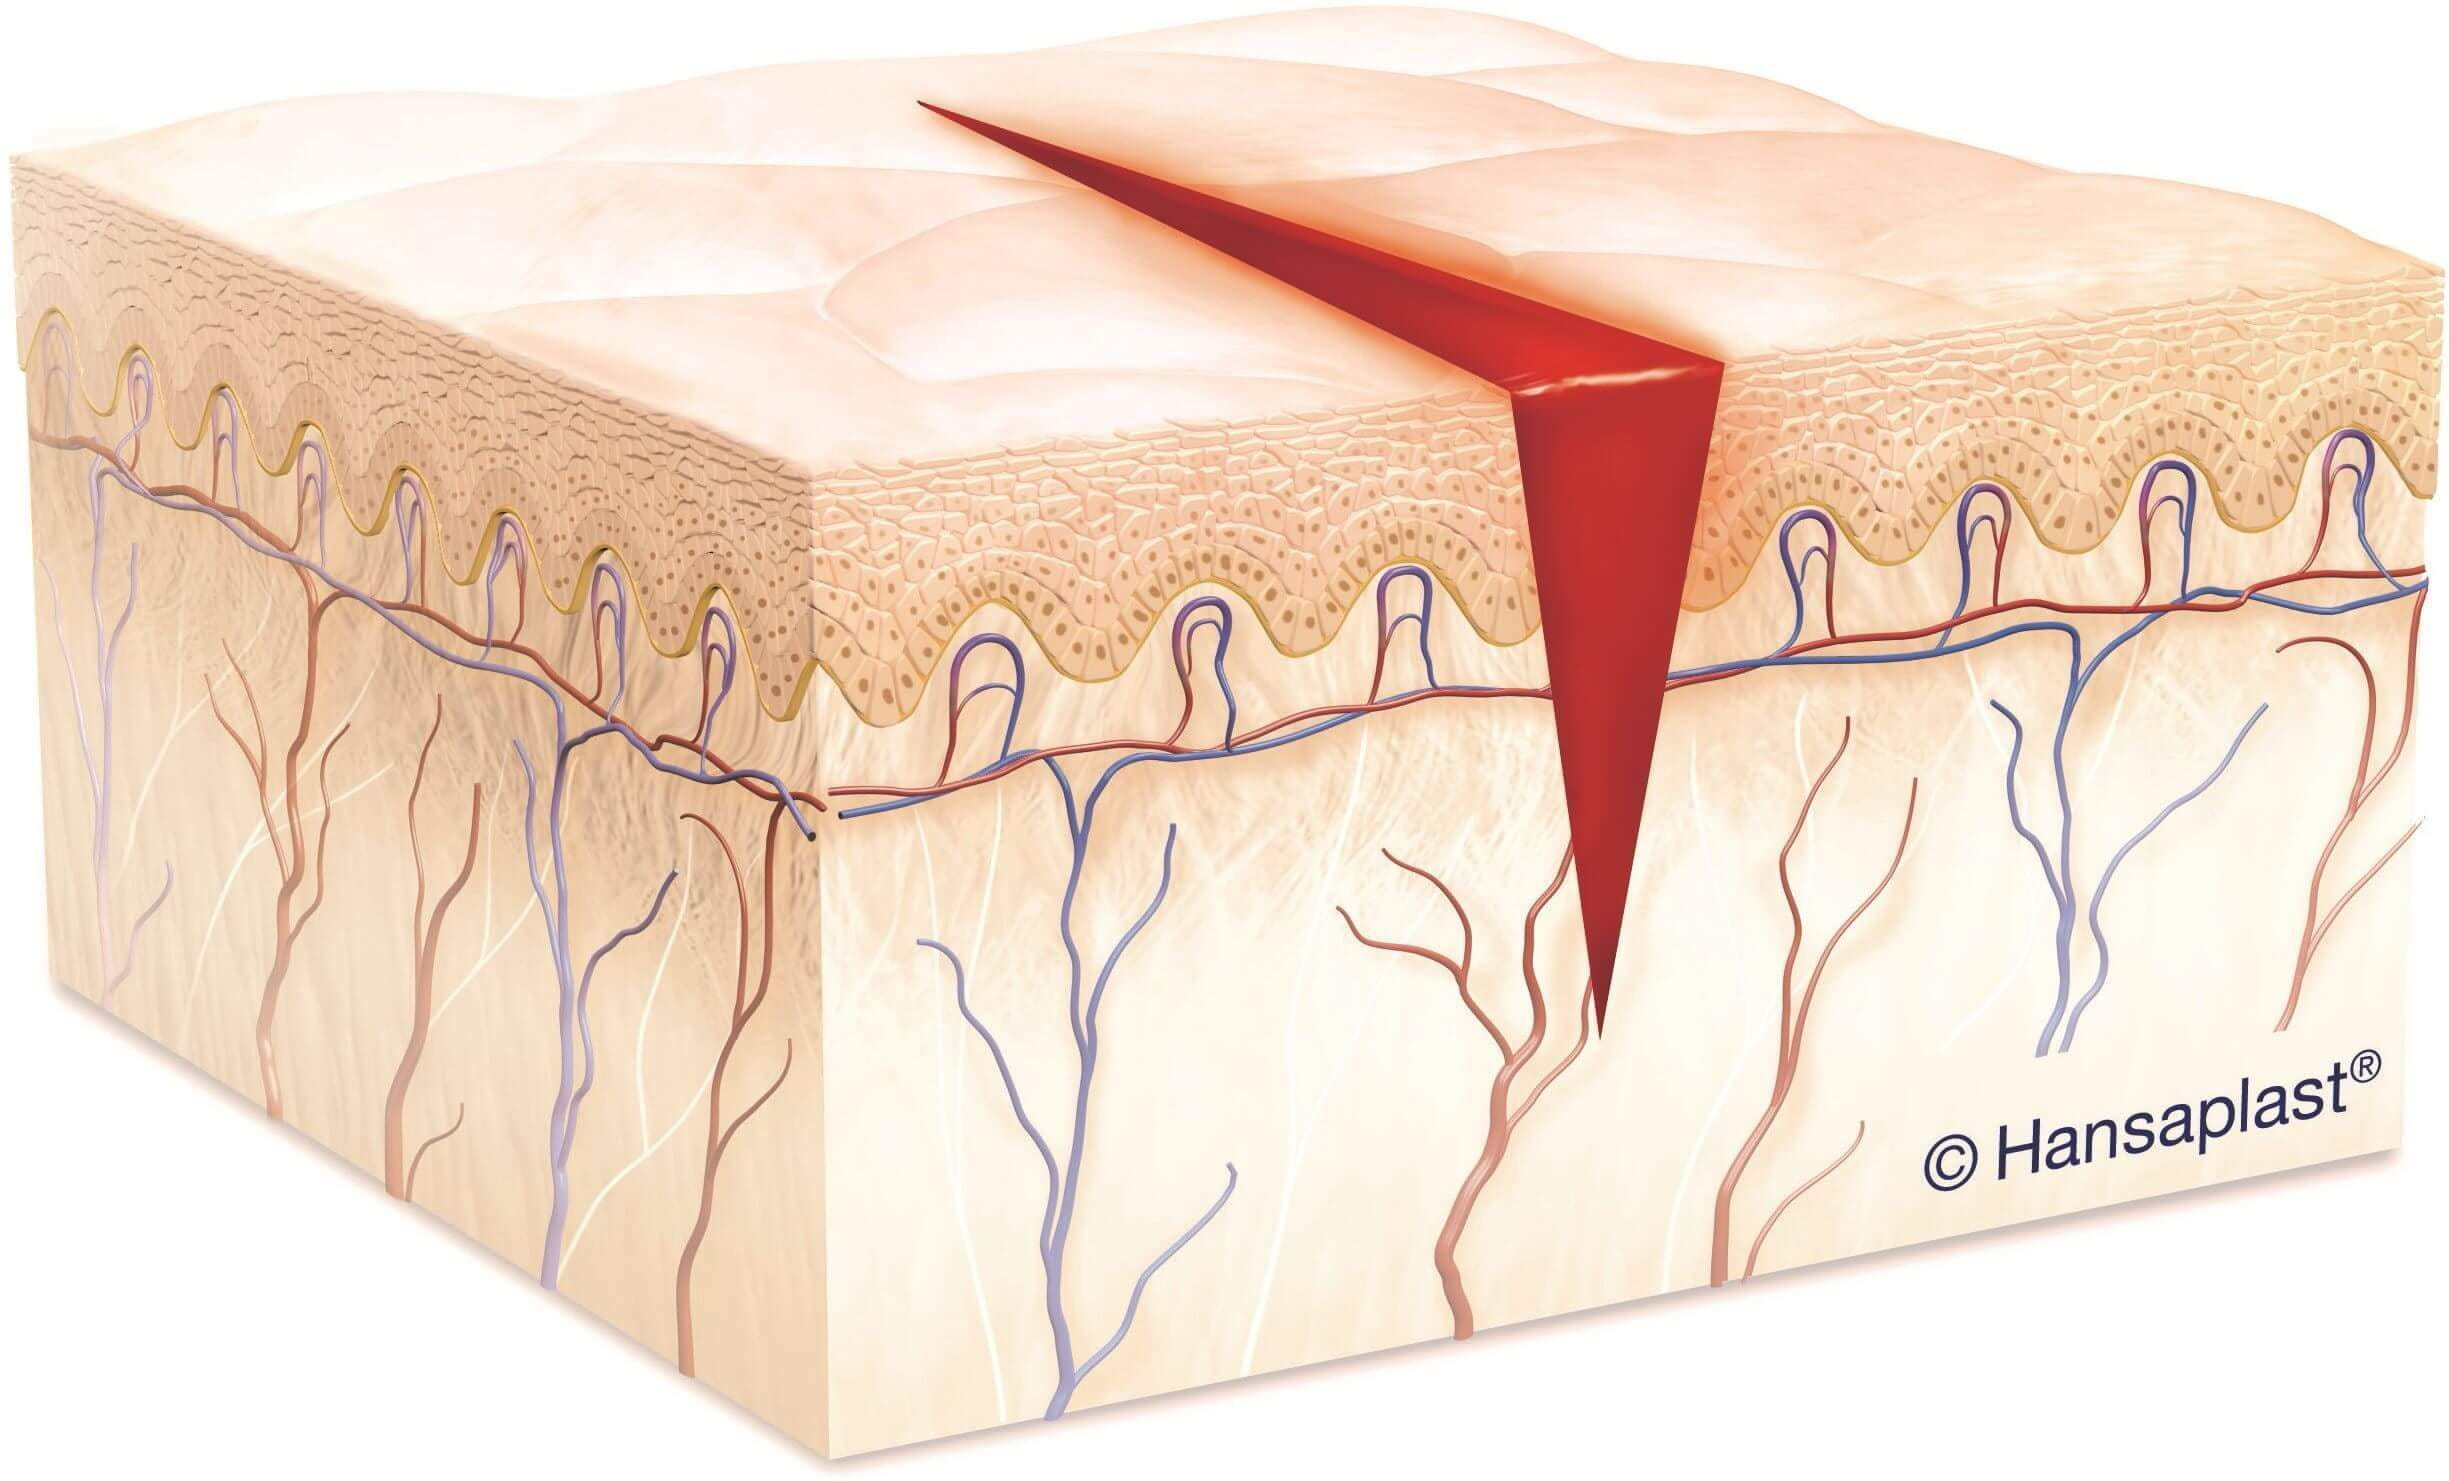 Diagram of a cut showing skin and blood vessels